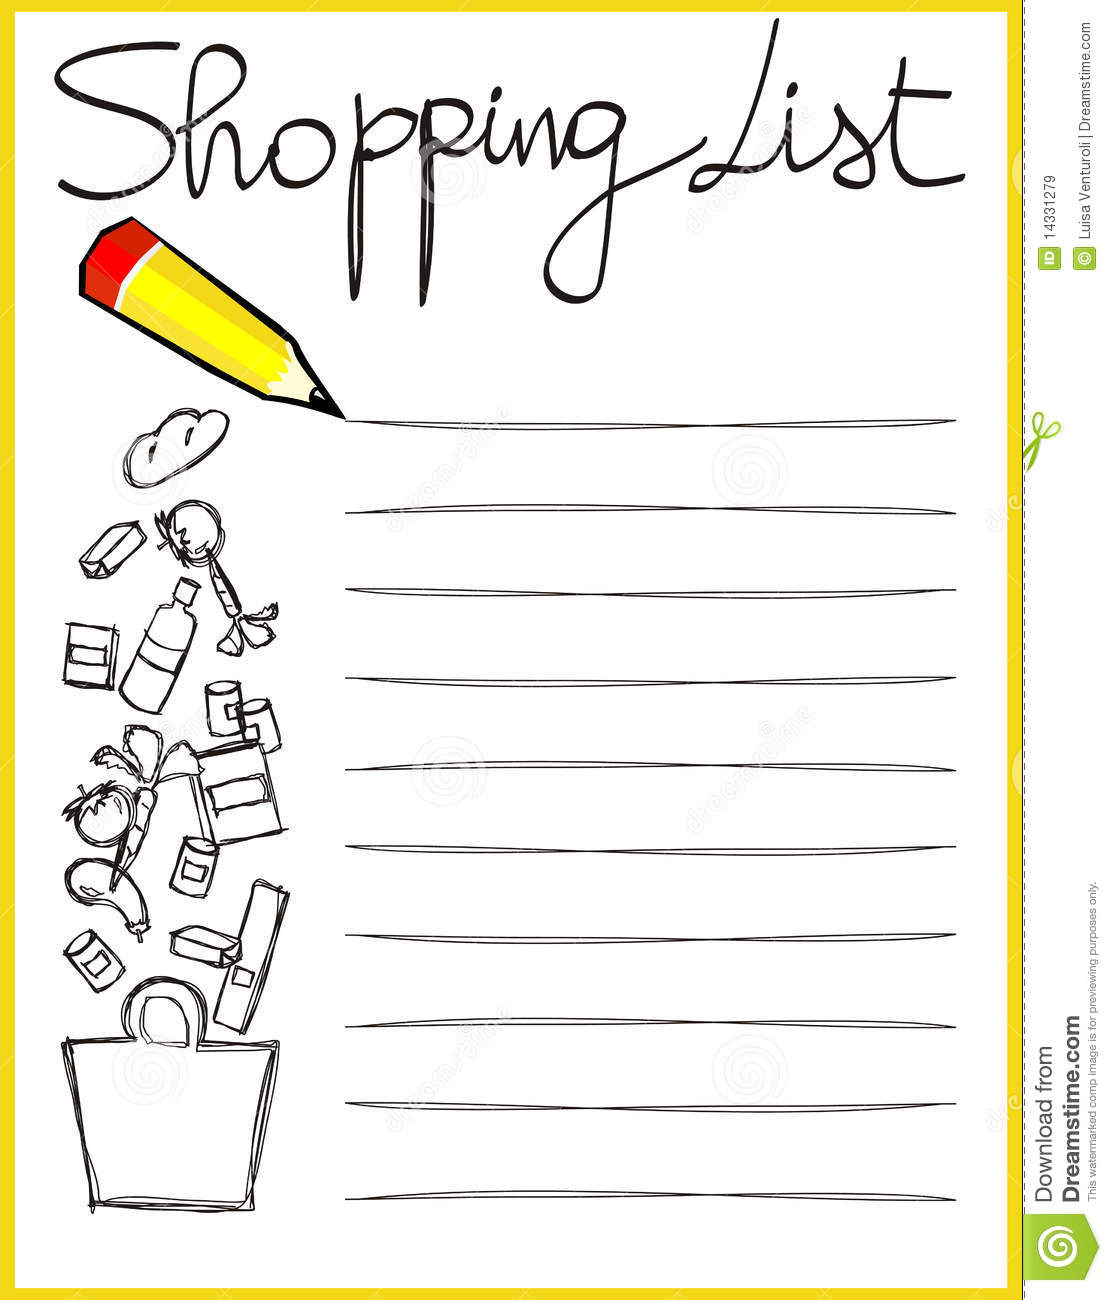 Have You Written Your 2016 Shopping List?